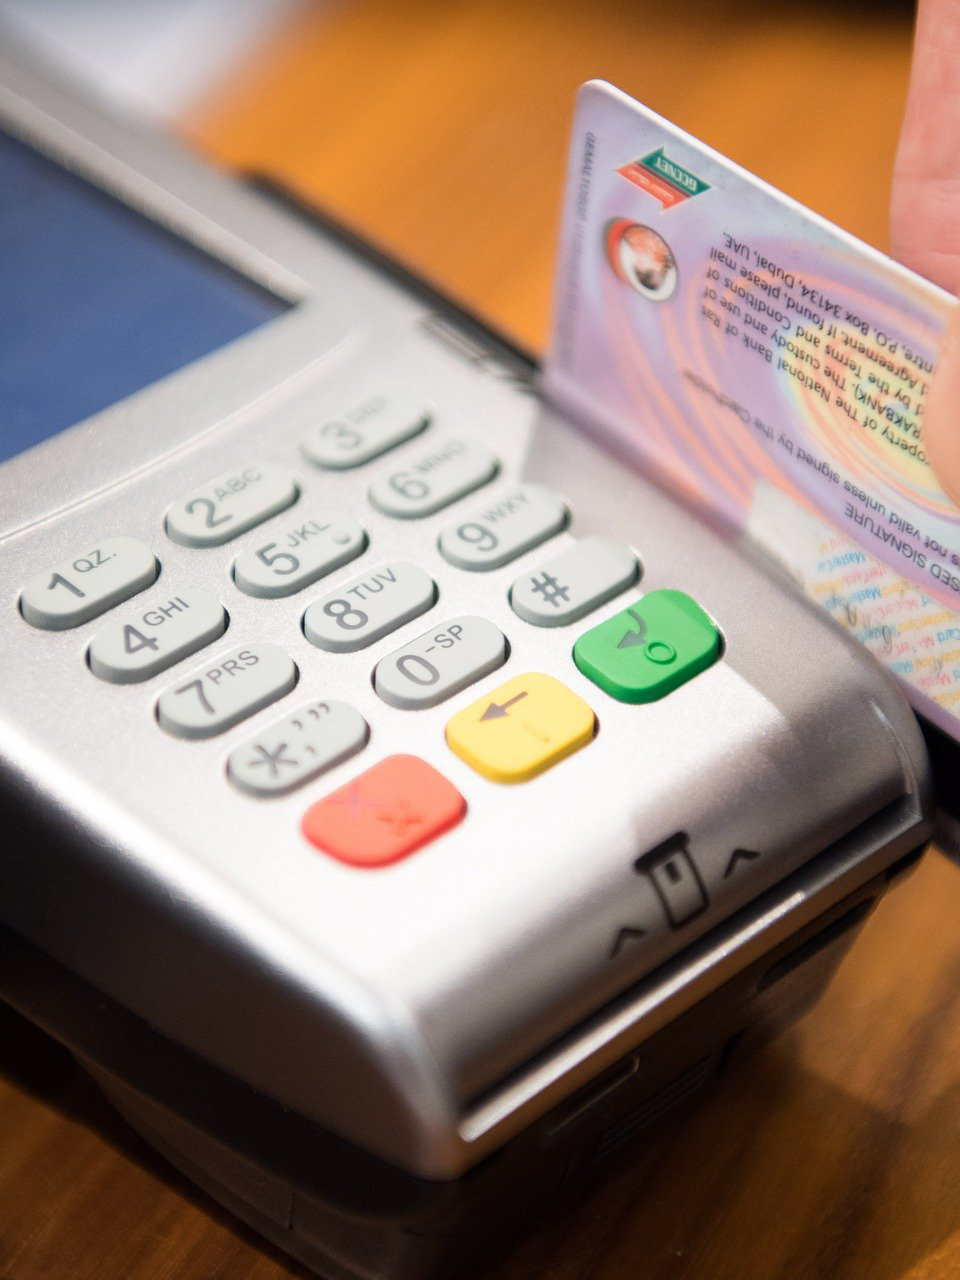 Image of a debit card payment